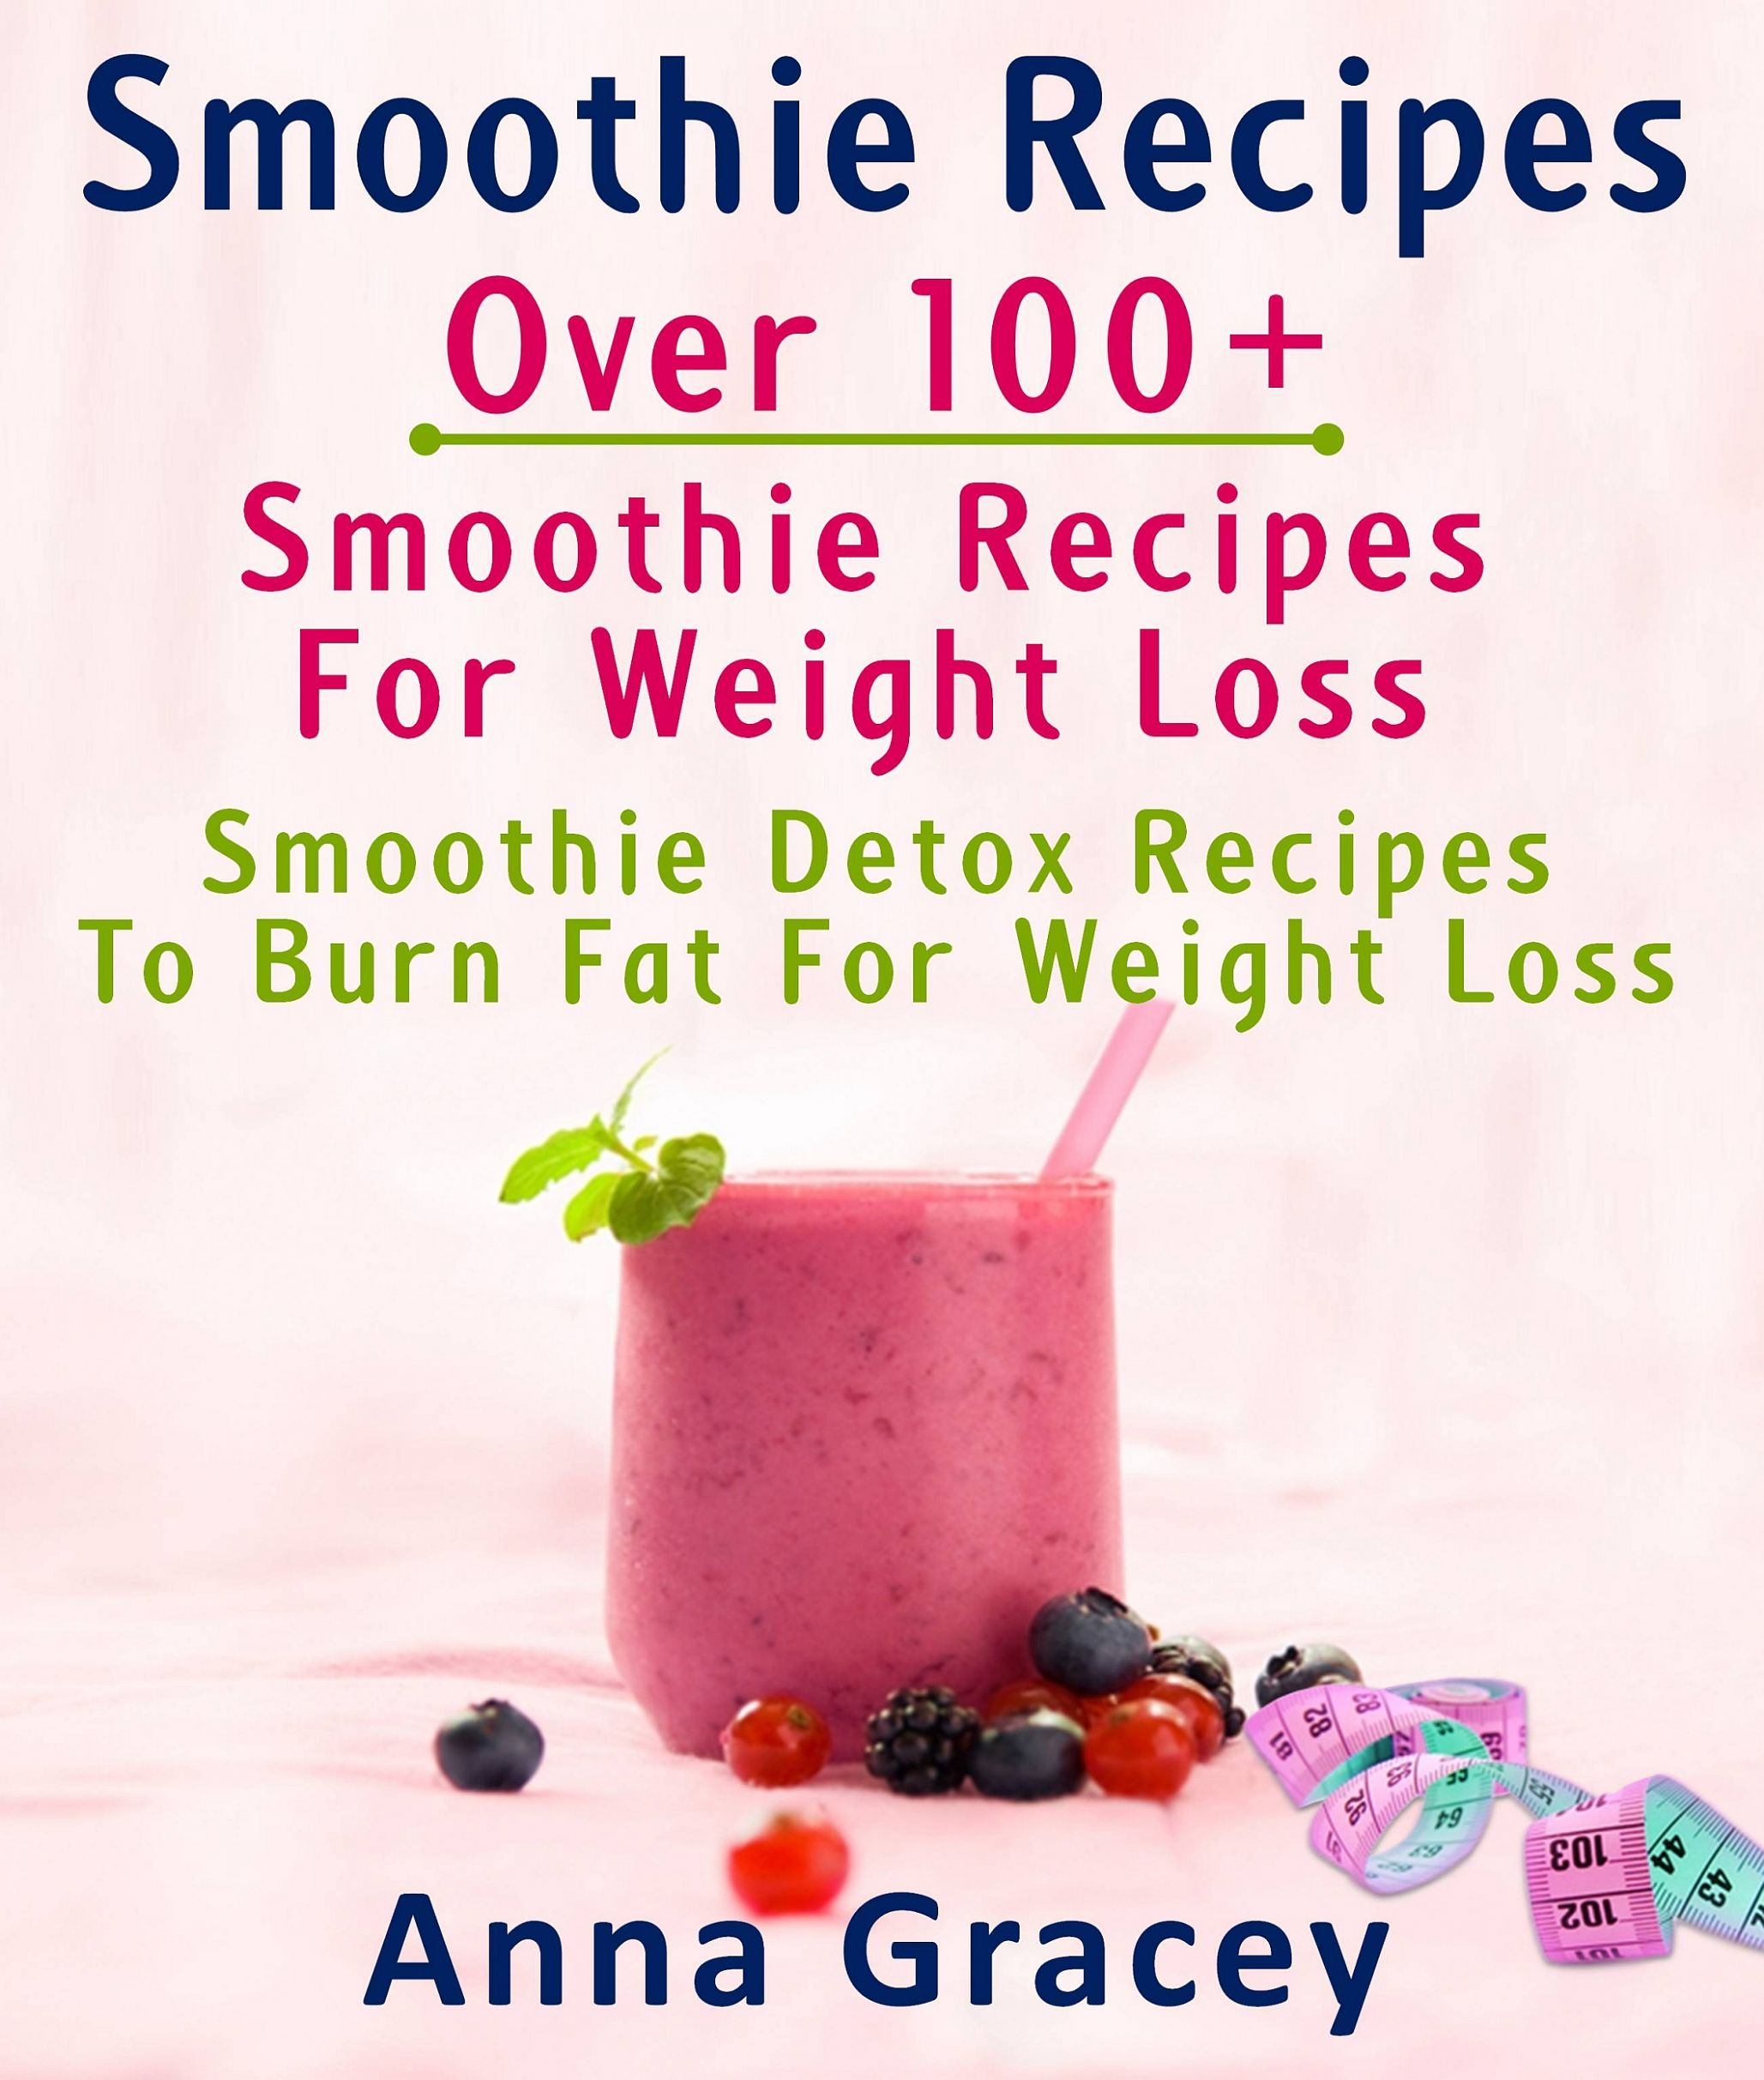 Smoothie Recipes: Over 11+ Smoothie Recipes For Weight Loss : Smoothie  Detox Recipes To Burn Fat For Weight Loss, an Ebook by Anna Gracey